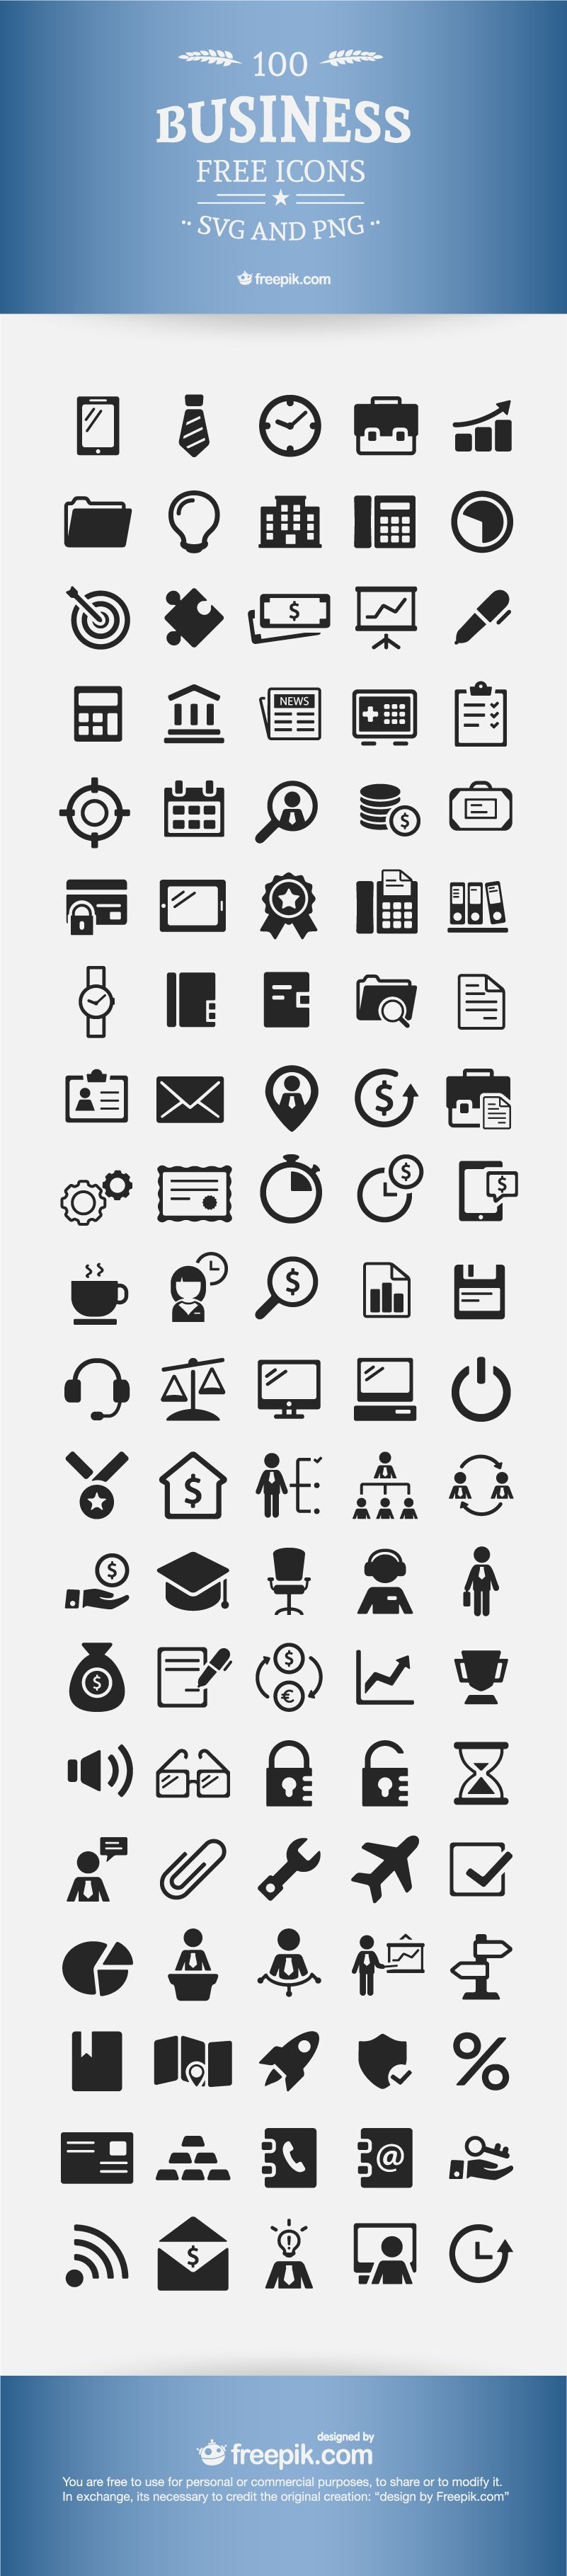 download  free business icons